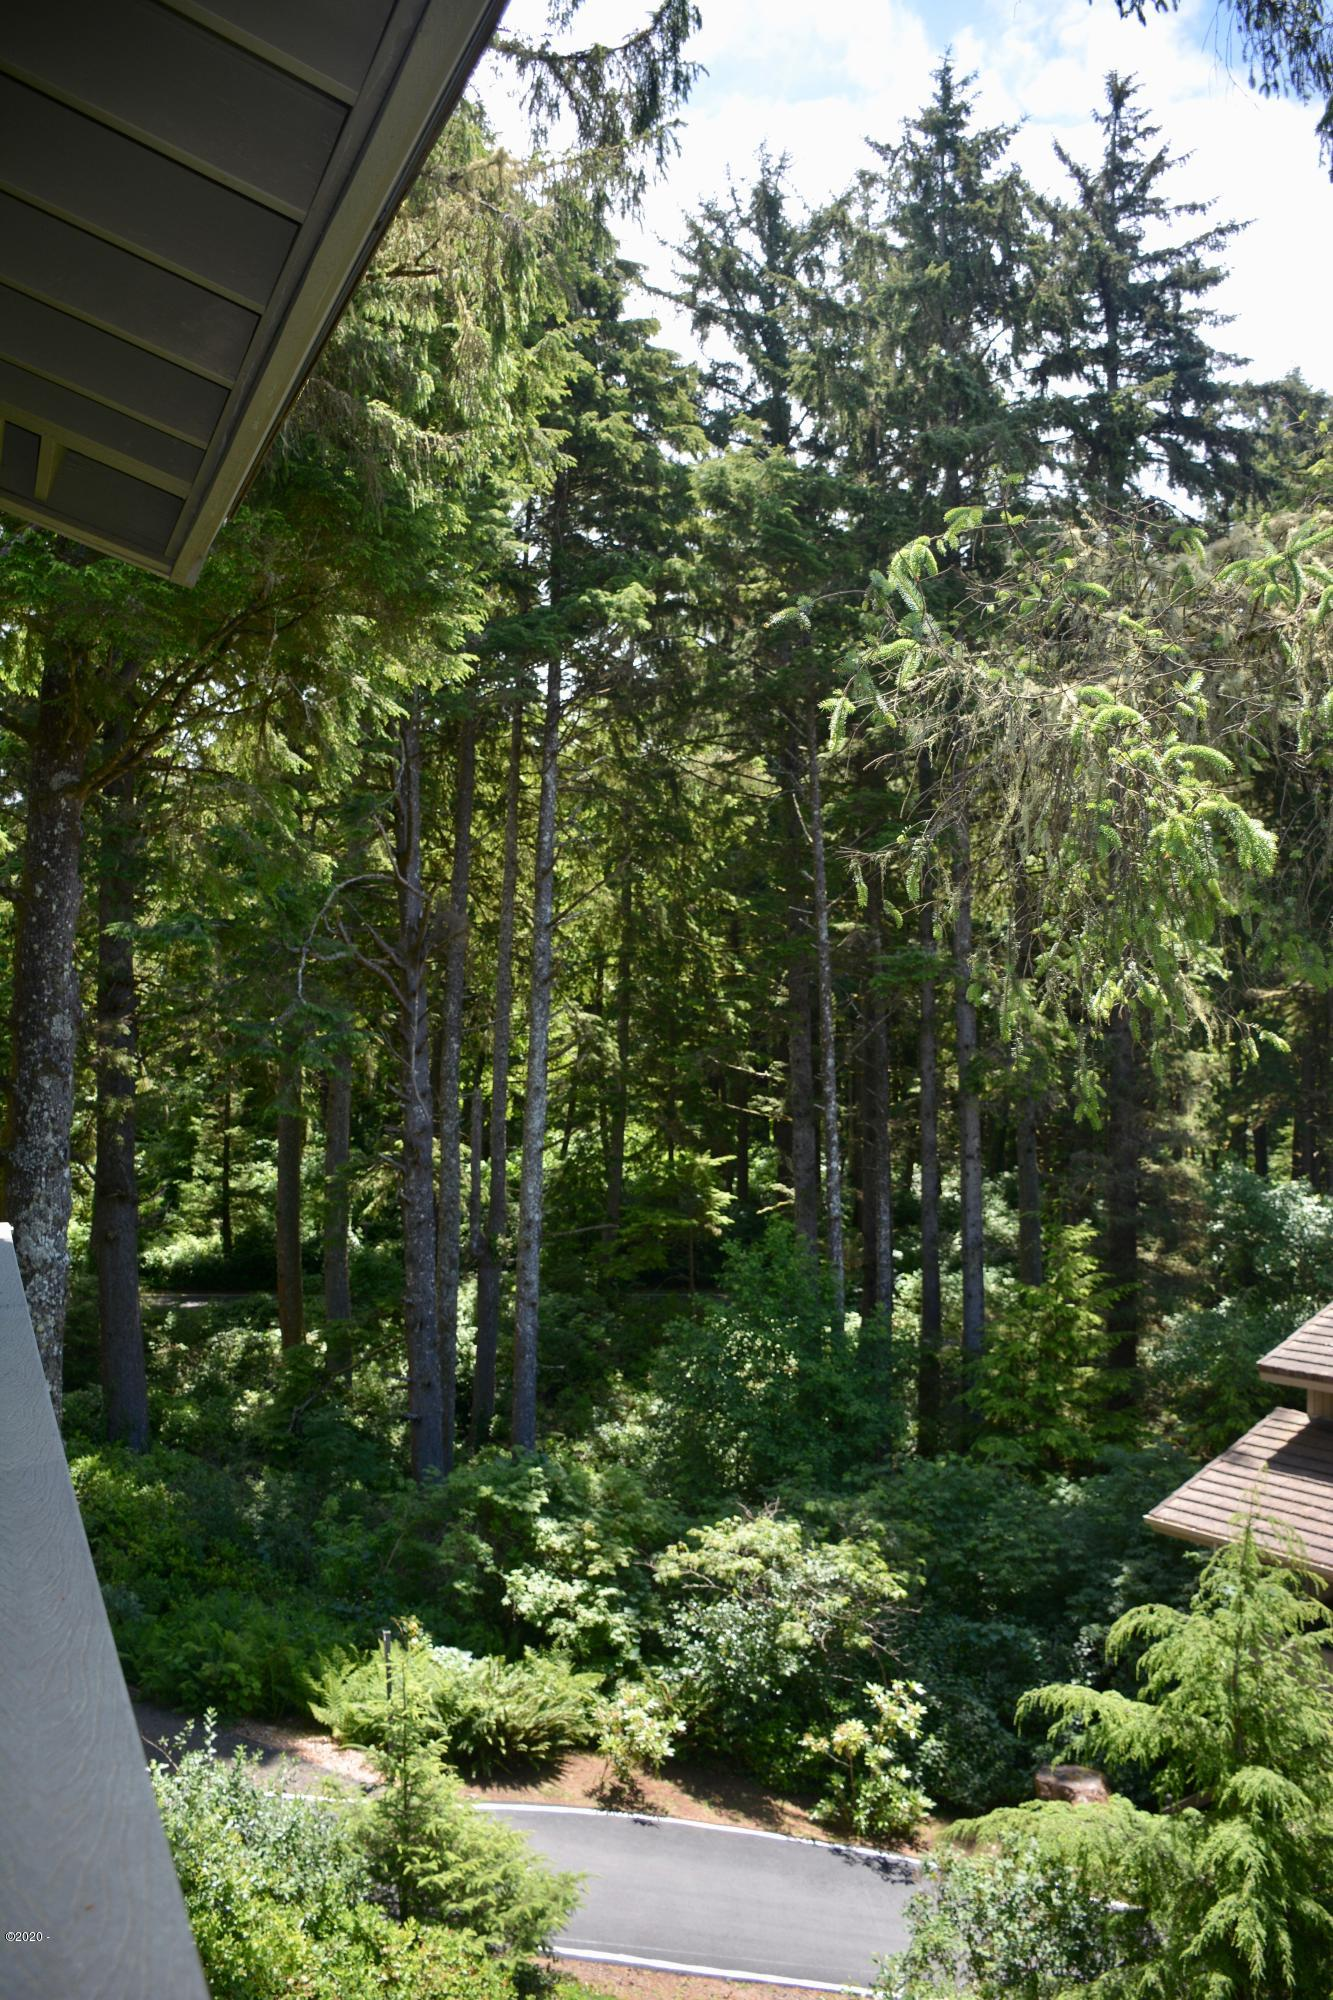 301 Otter Crest Dr, #304-305, 1/2 Share, Otter Rock, OR 97369